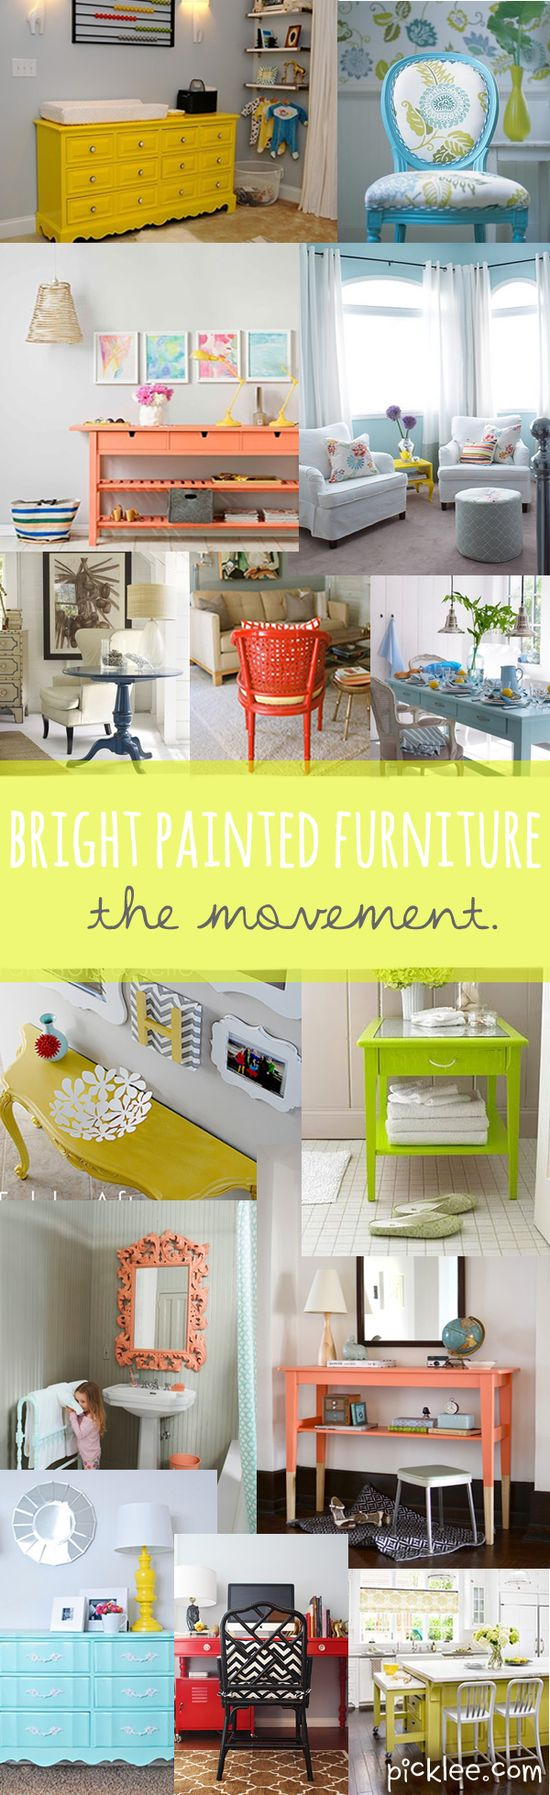 Ideas for painting furniture